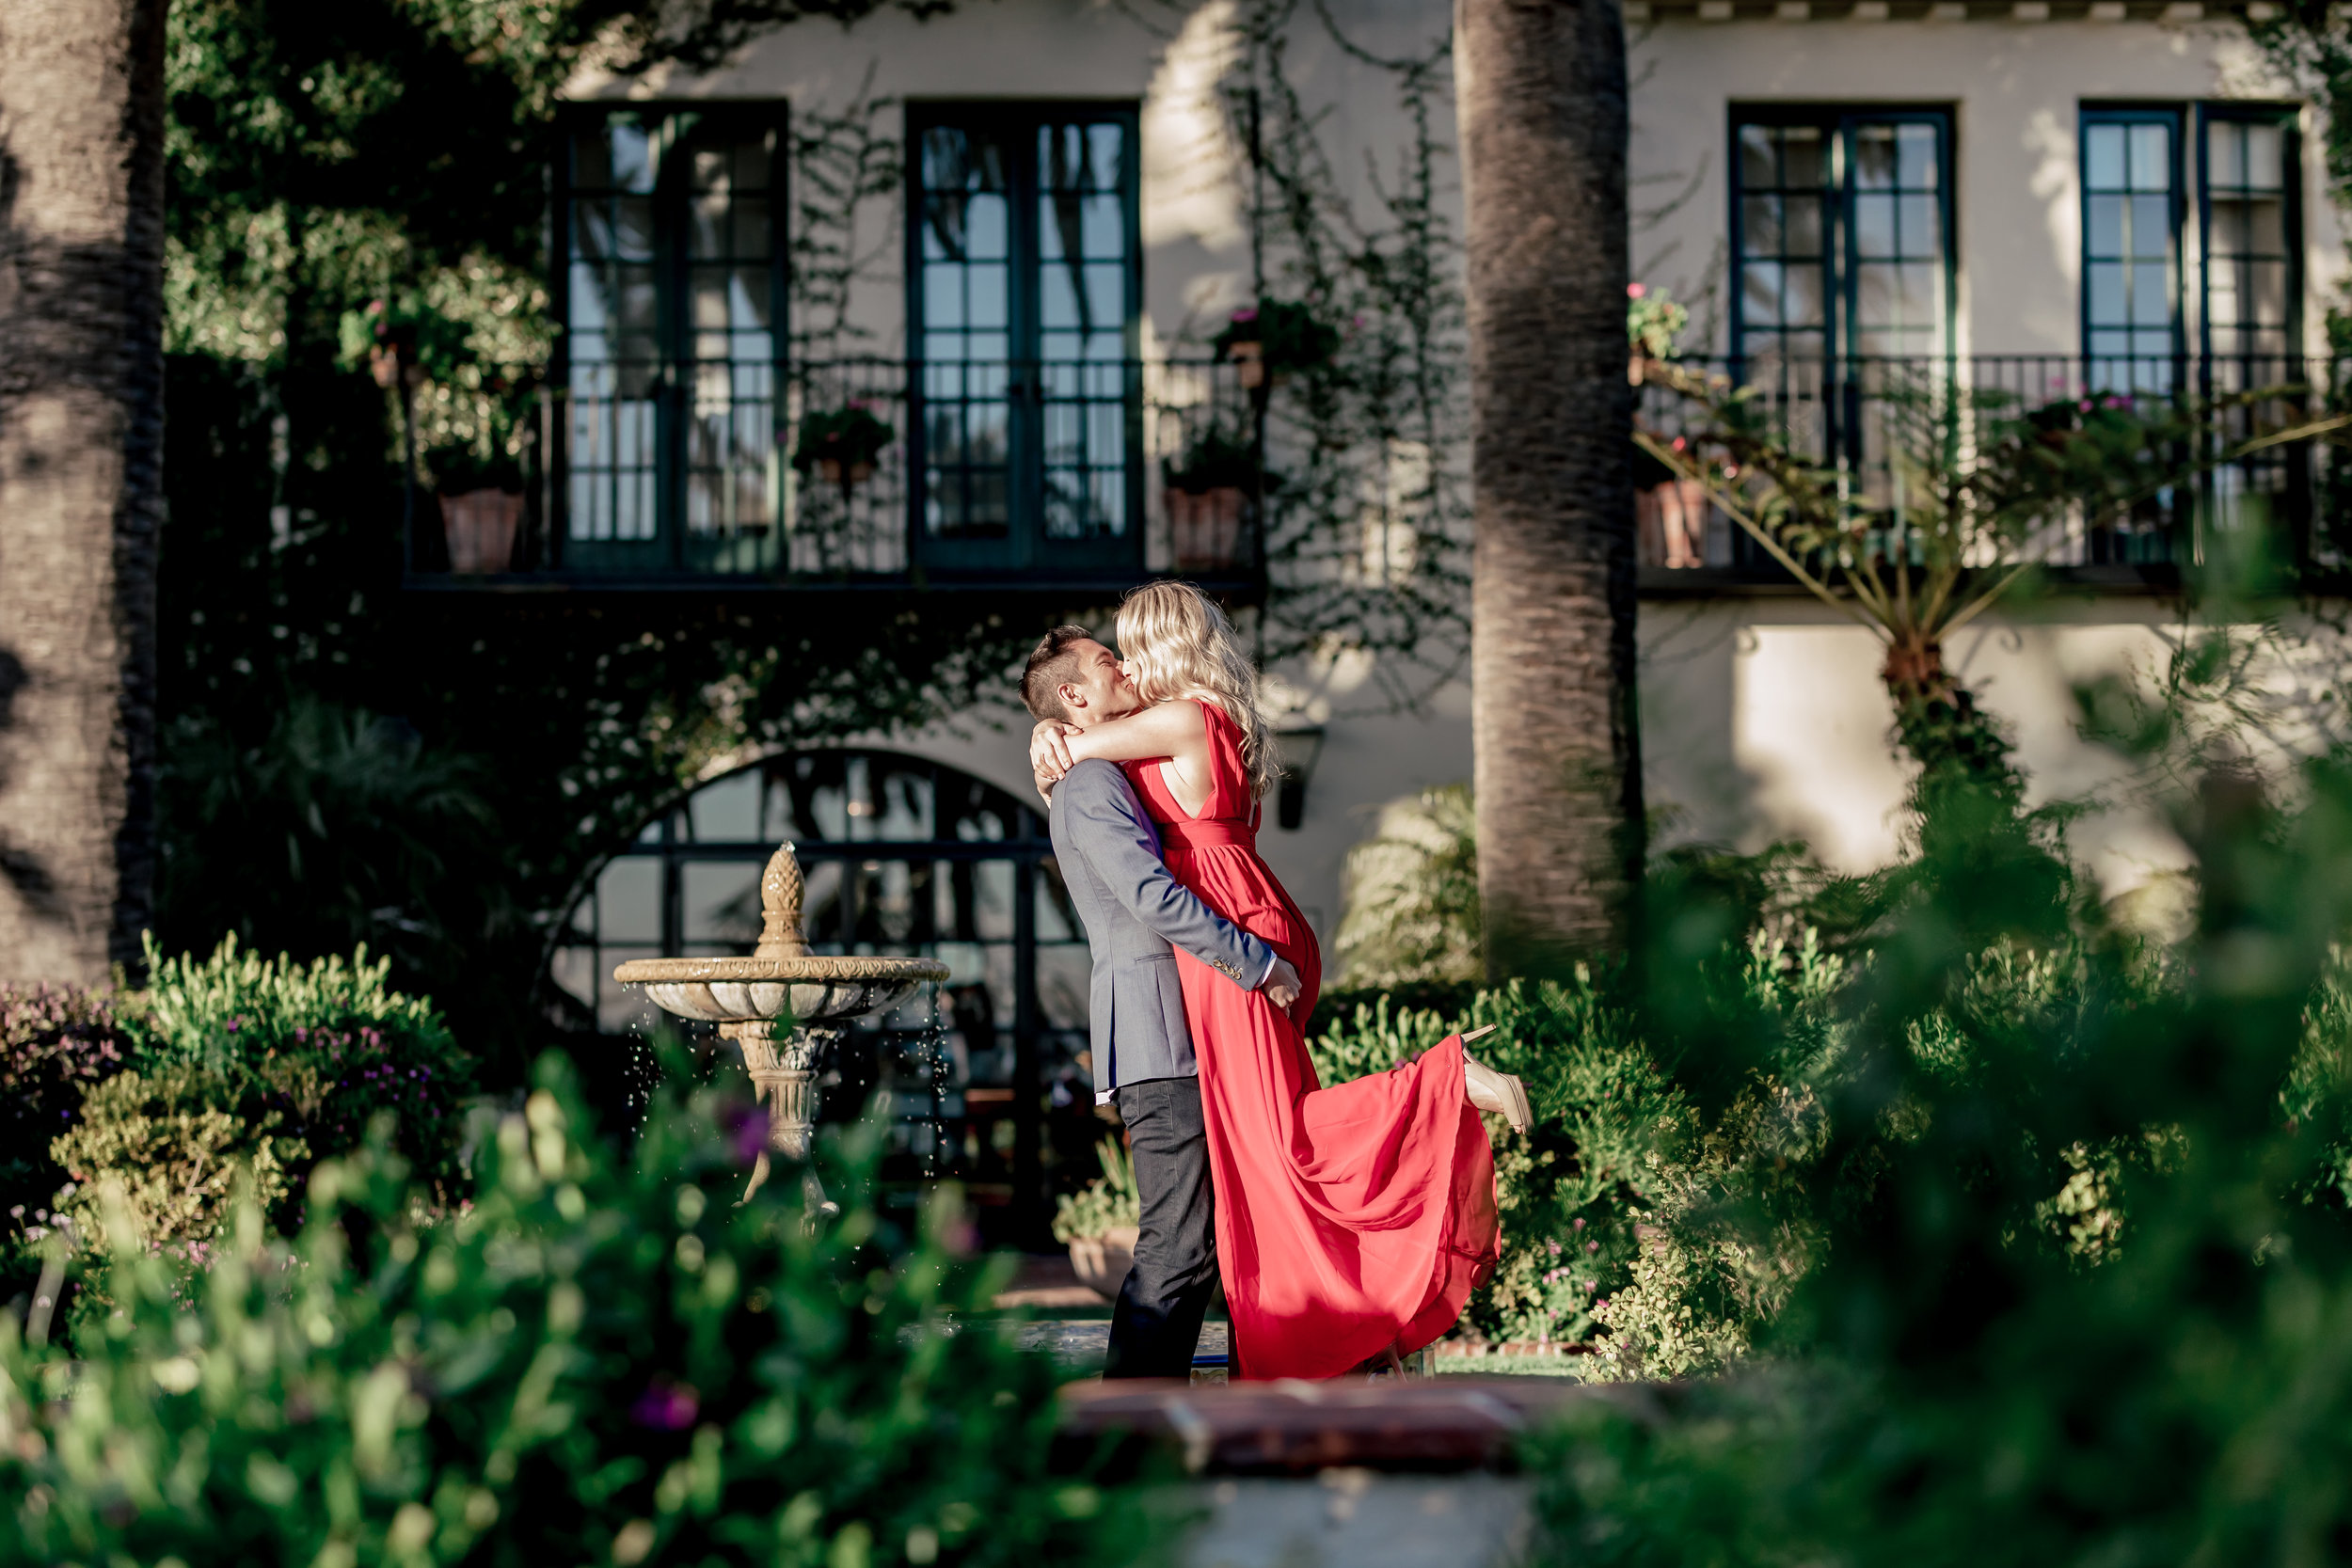 santabarbarawedding.com | Rewind Photography | Butterfly Beach | Engaged Couple In Tropical Garden